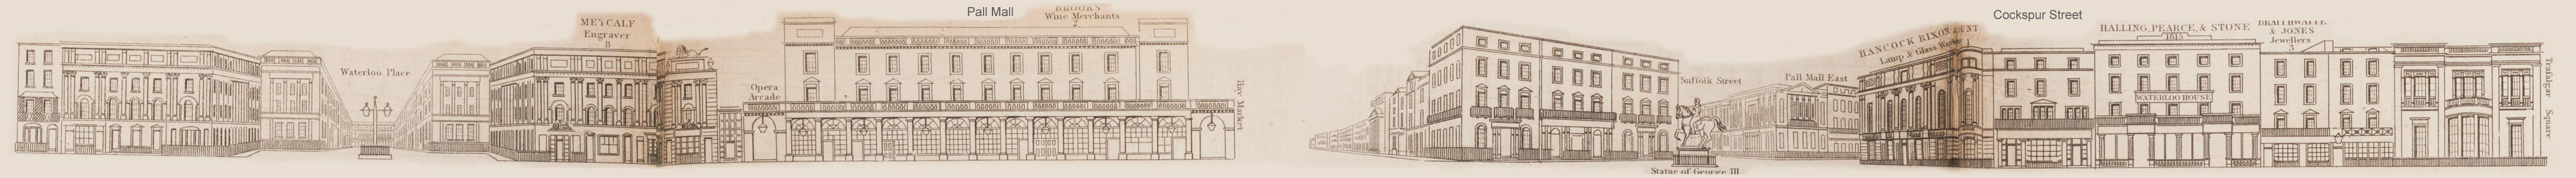 map - Tallis's London street views : No. 77. Cockspur Street and Pall Mall (north)